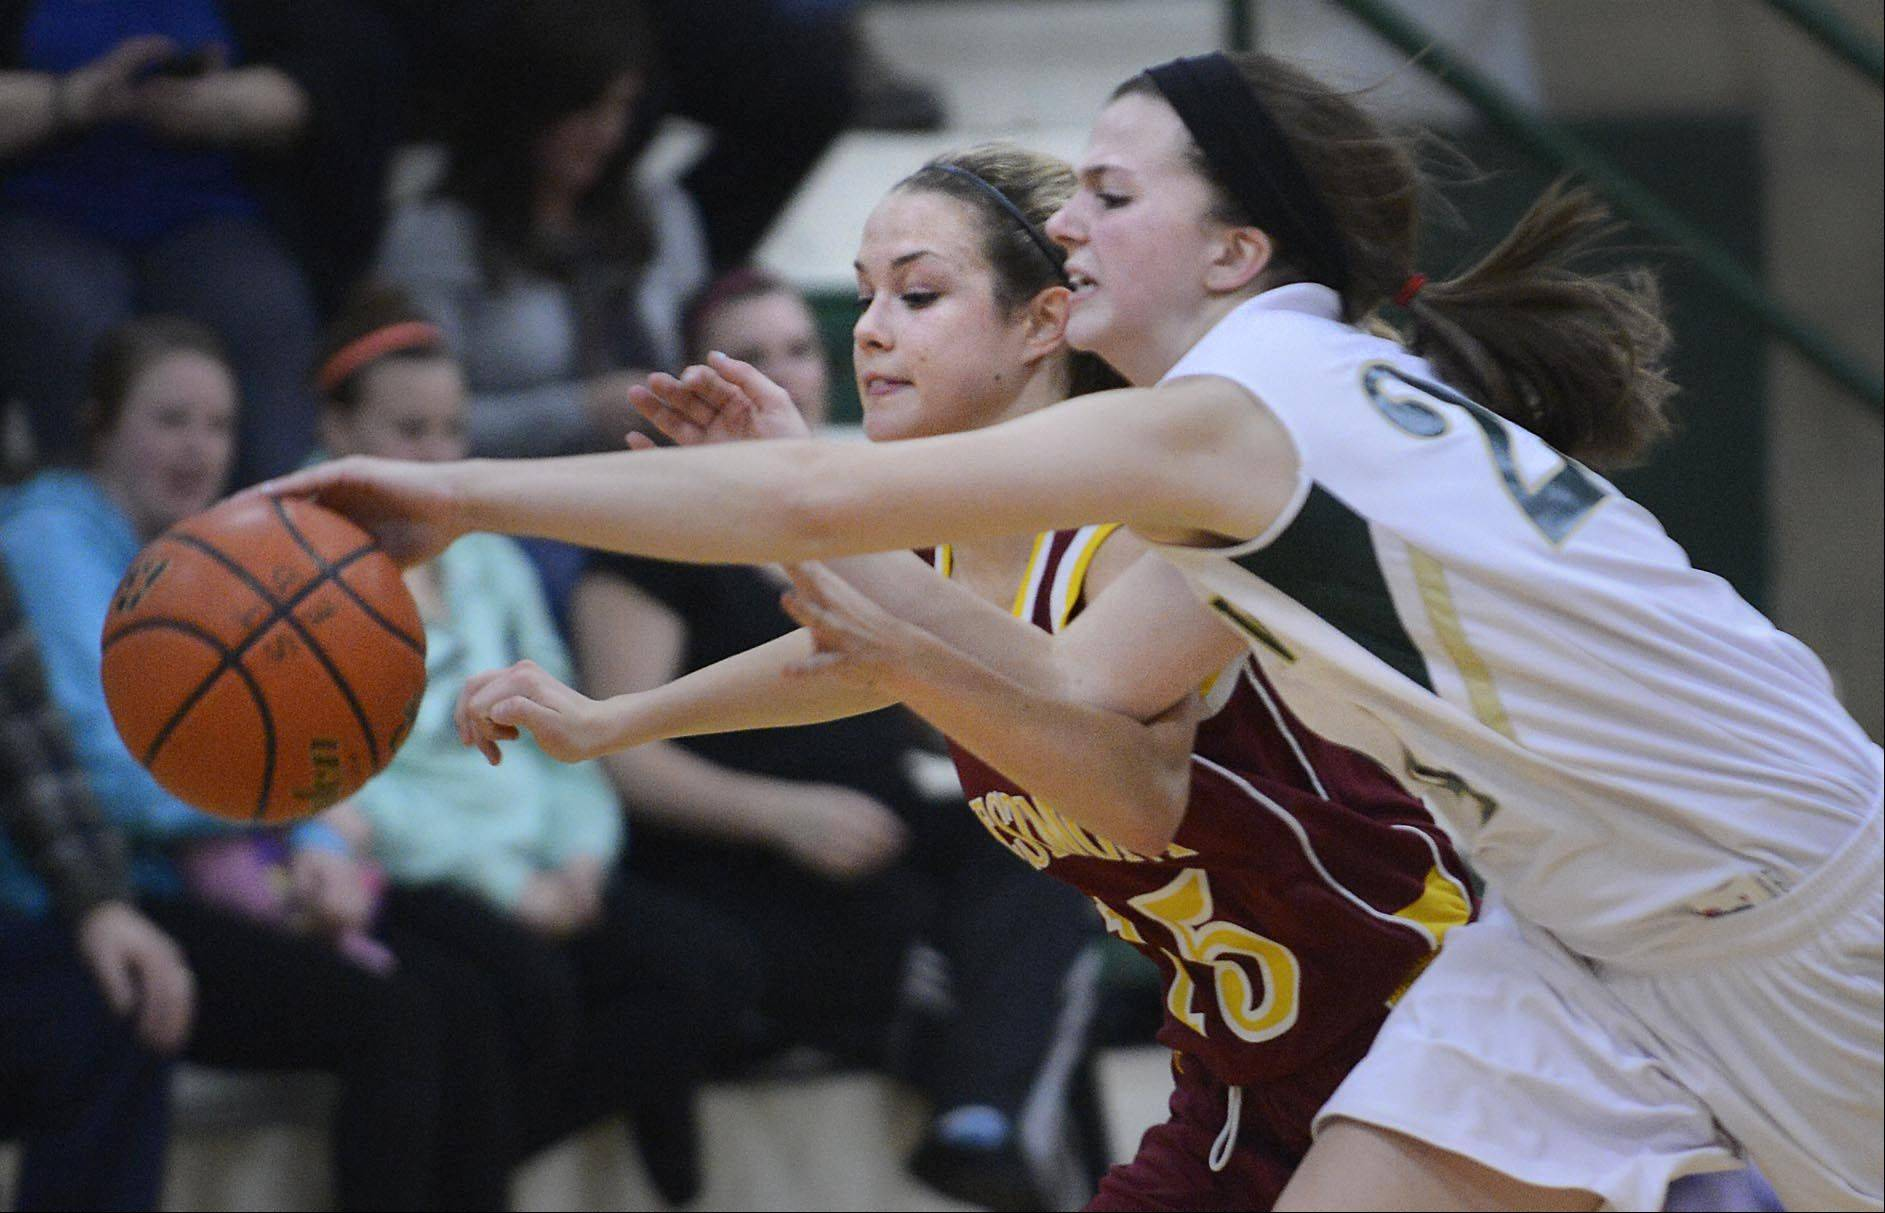 St. Edward's Katie Swanson stretches for the ball against Westmont's Annie Carlson Tuesday in Elgin.